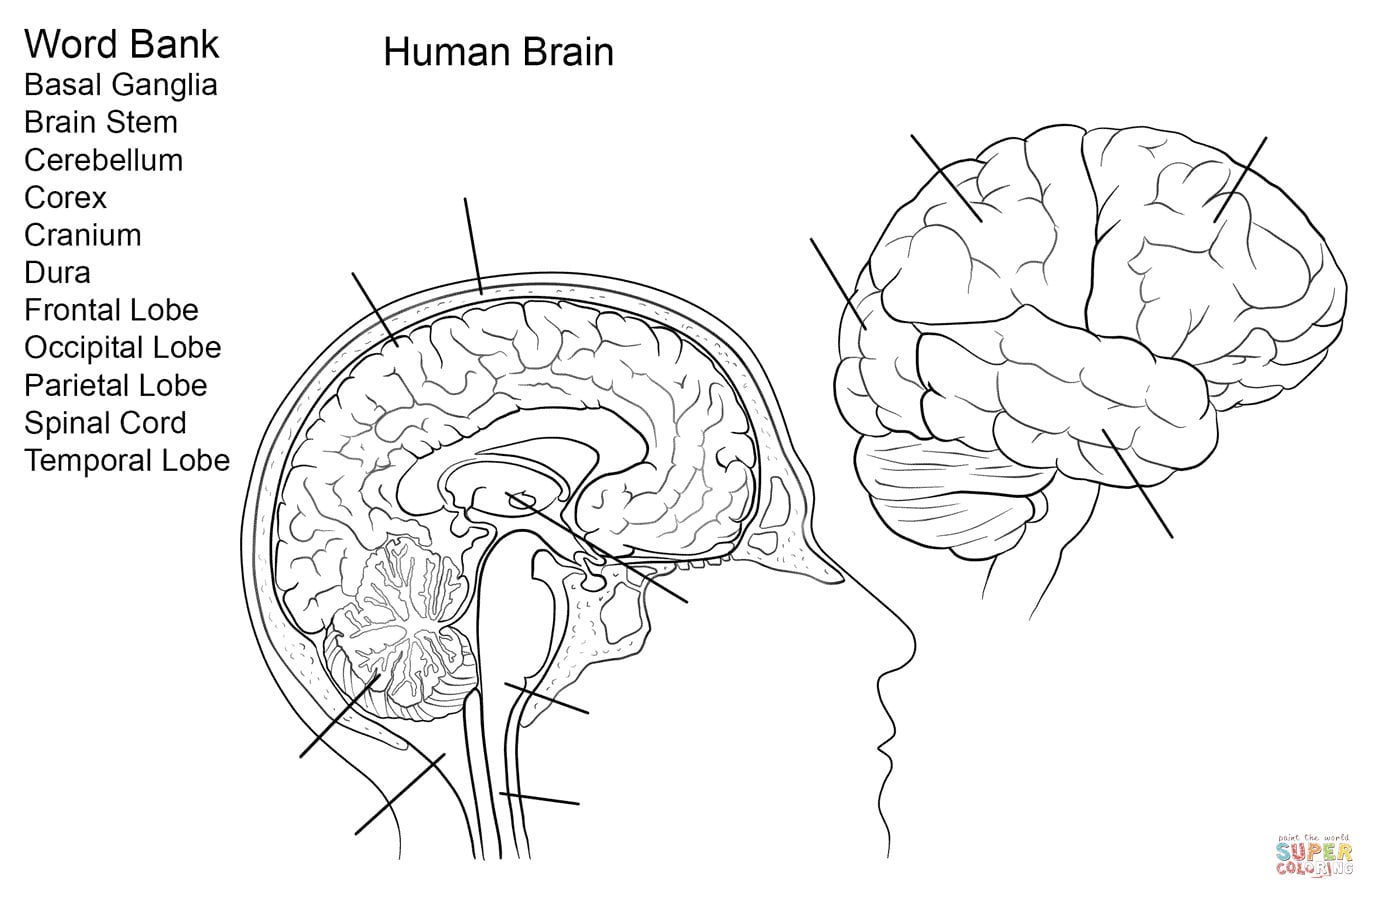 Human Brain Worksheet Coloring Page  Free Printable Coloring Pages Throughout Skin Diagram Coloring And Labeling Worksheet